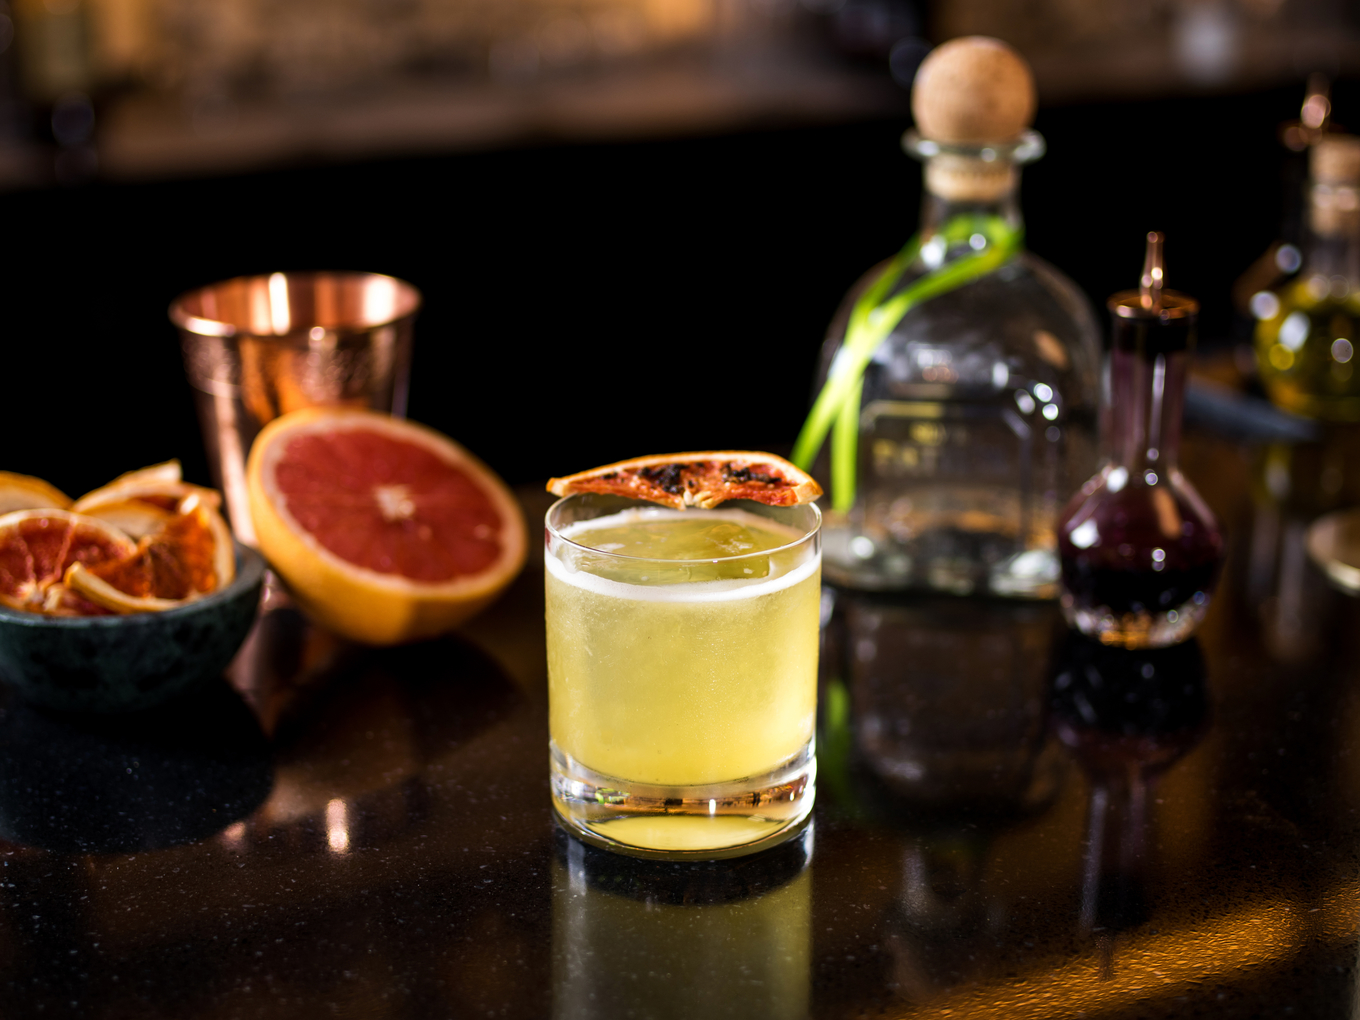 Tequila cocktails image 1